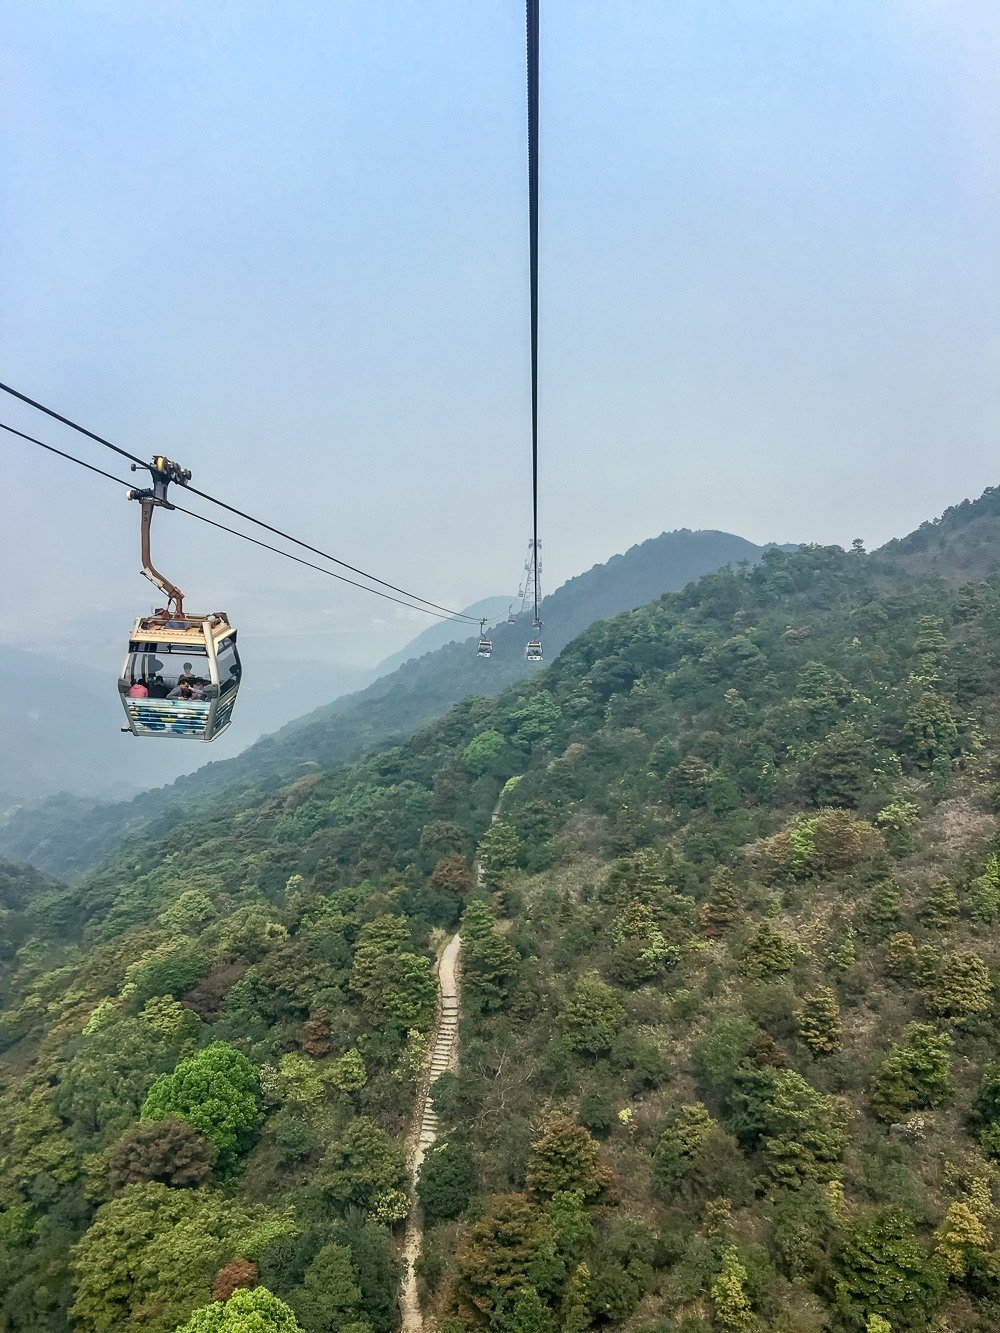 There are many trails on Lantau Island in Hong Kong